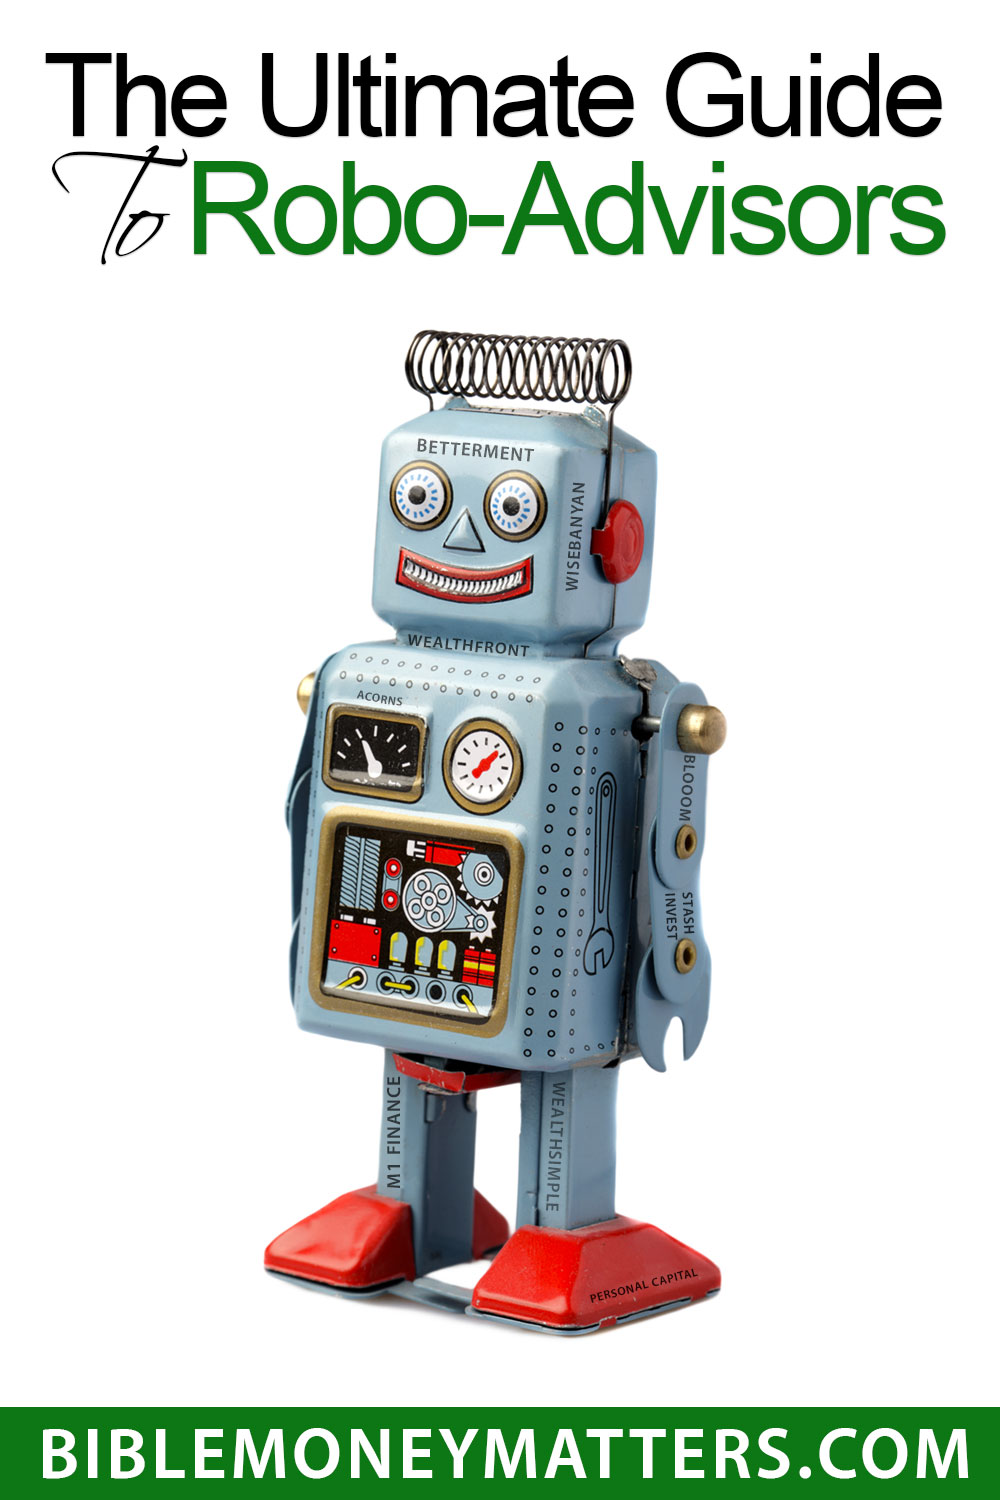 If you want to use an automated investing service, this ultimate guide to robo-advisors can help you find the best robo-advisor for you. Let\'s roboinvest!